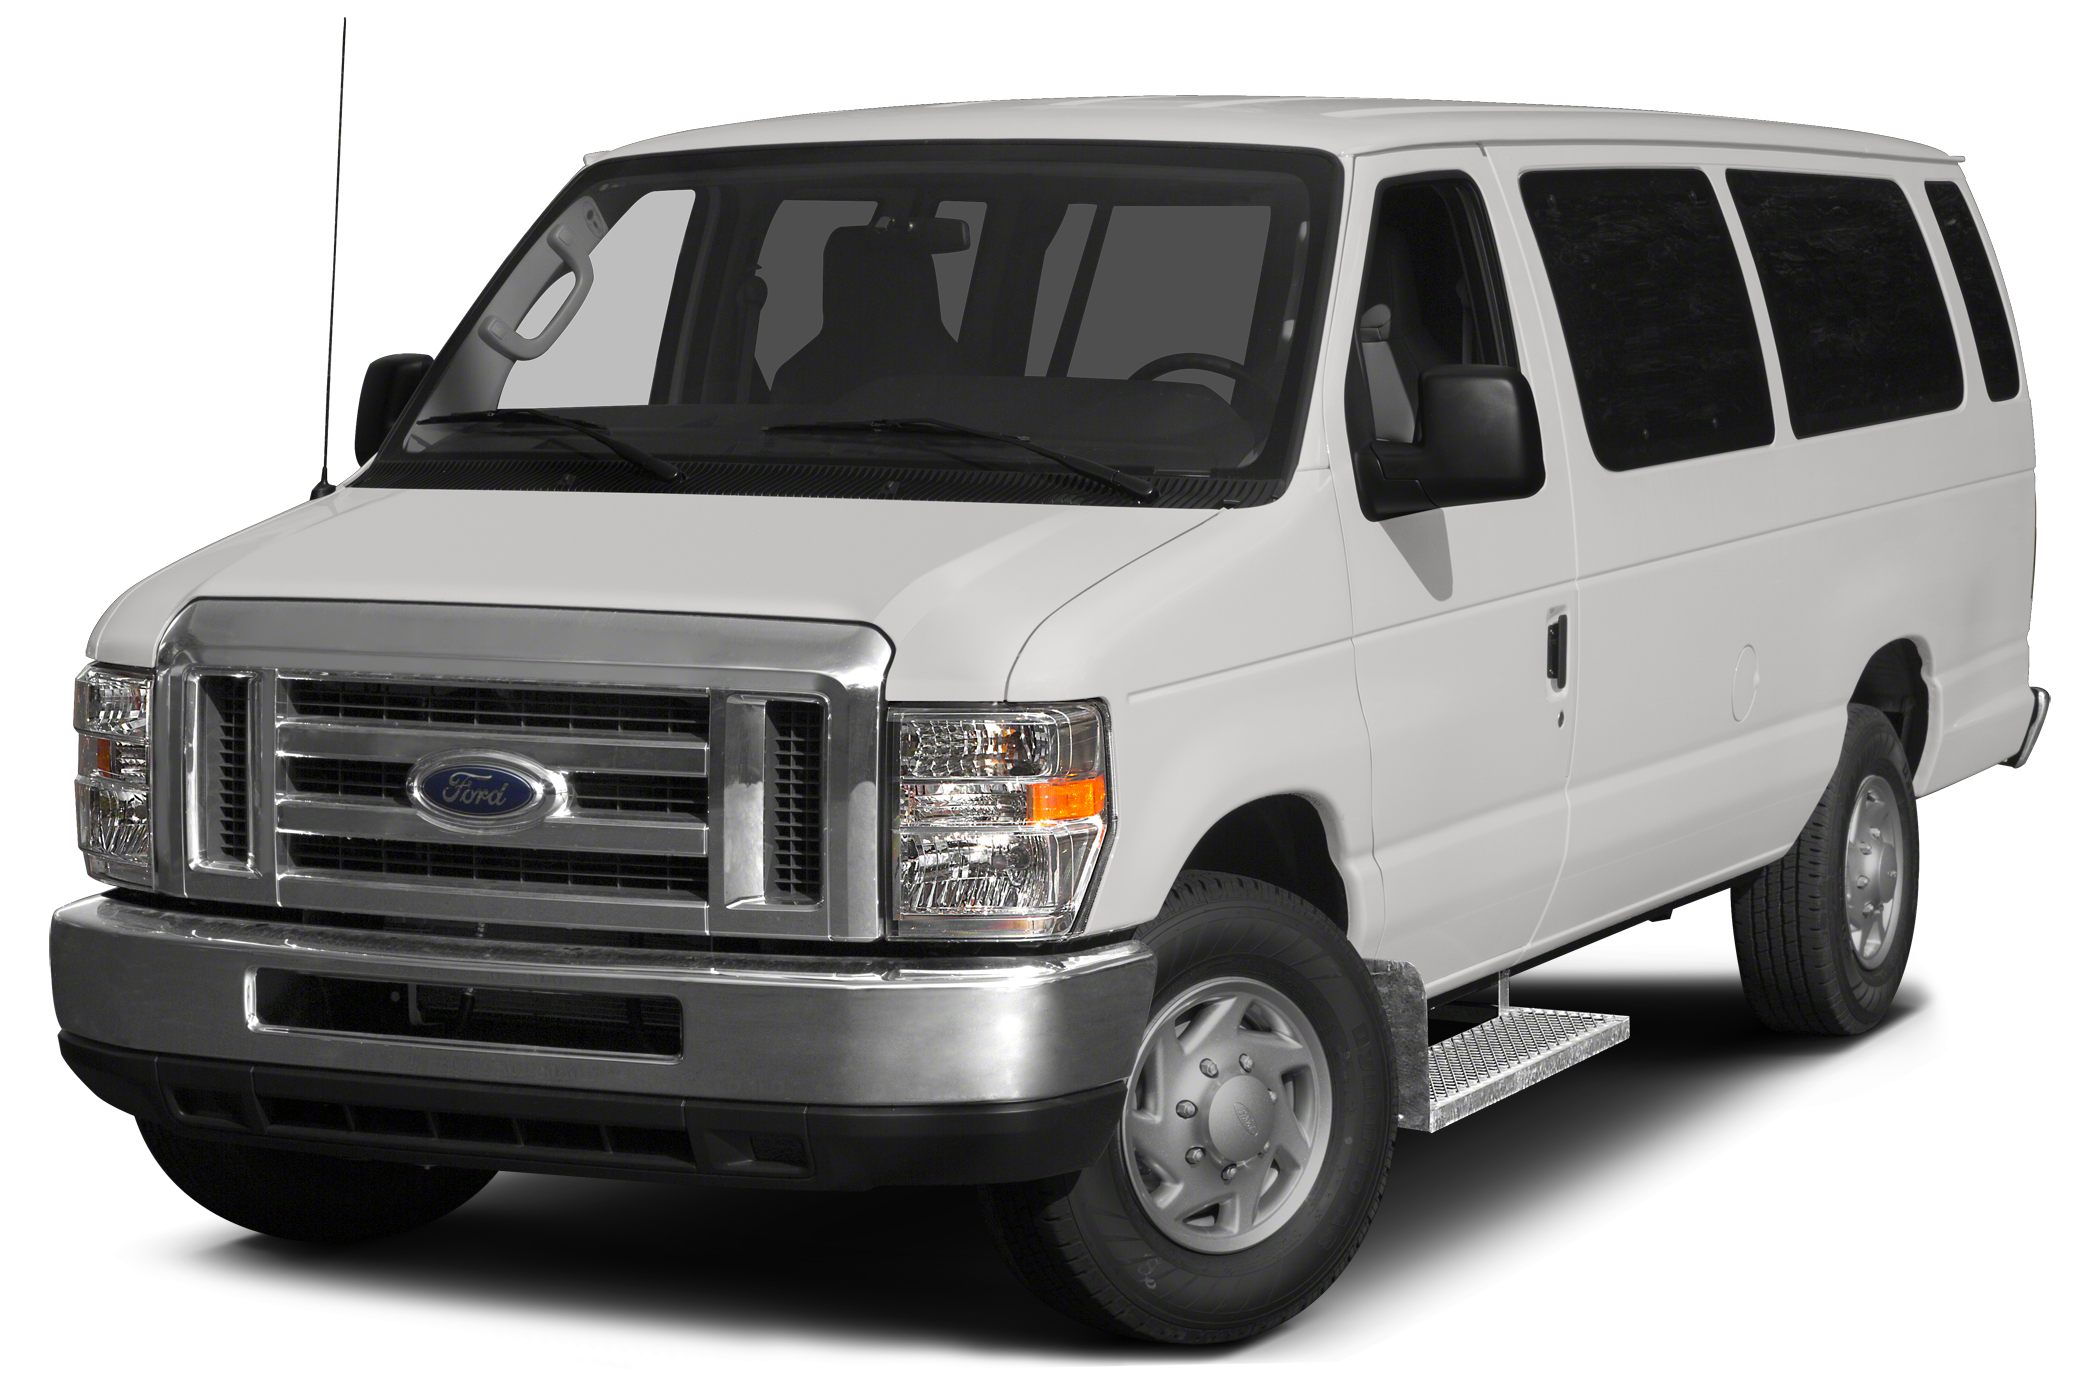 2013 Ford E-350 Super Duty XLT Extended Wagon Specs and Prices d1516f46a